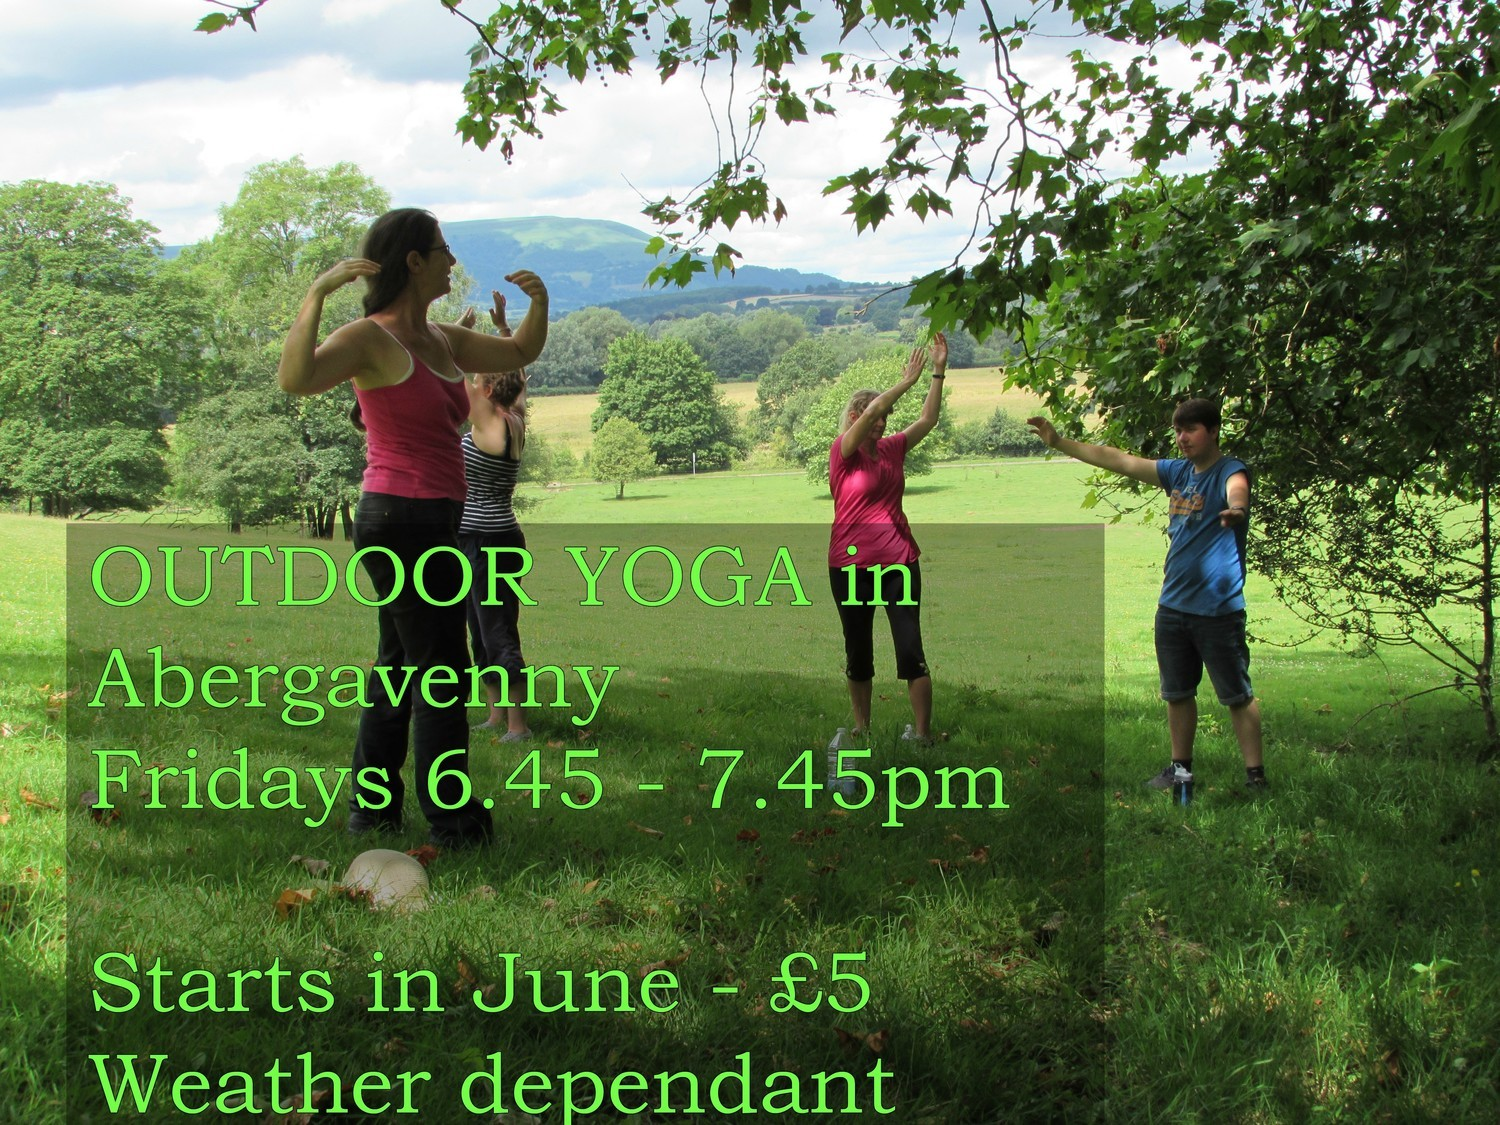 Fridays Outdoor Yoga - Abergavenny